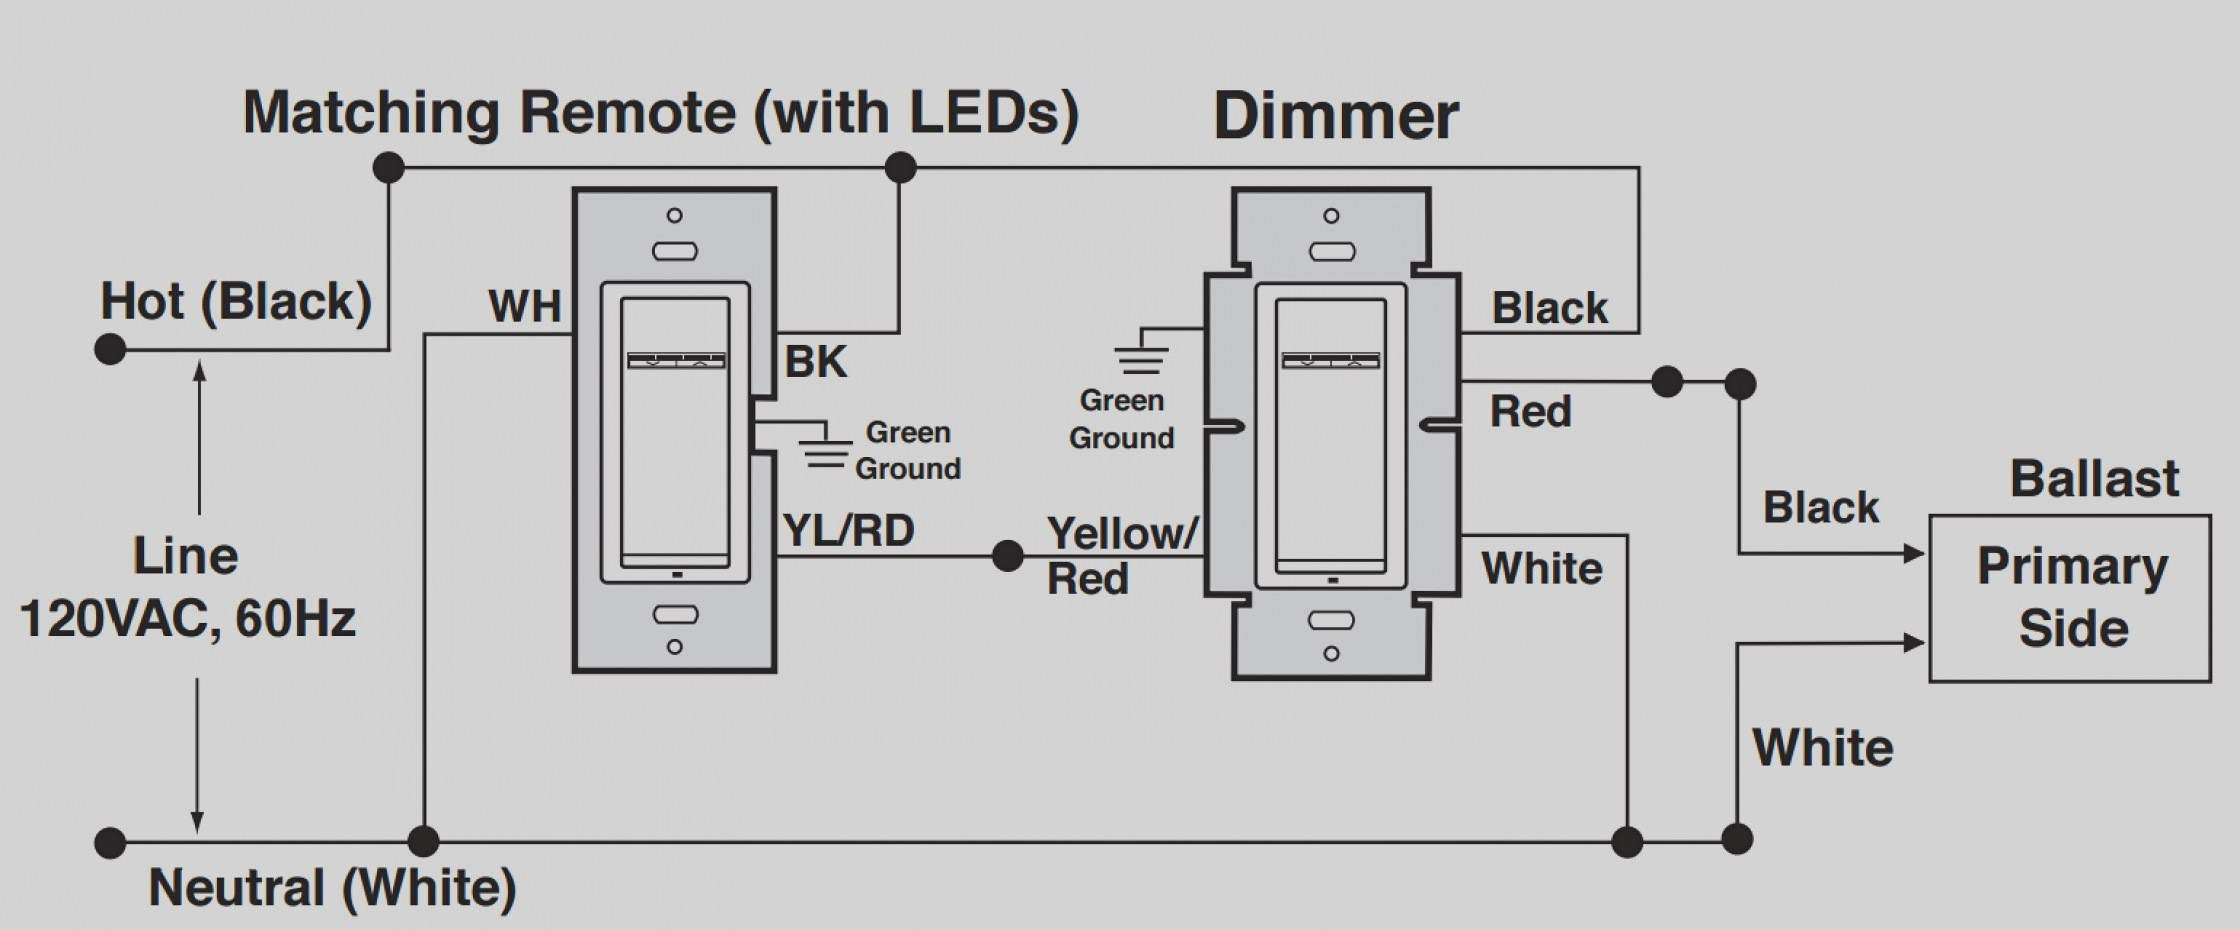 Single Pole Dimmer Switch Wire Diagram For - DIY Wiring Diagrams •